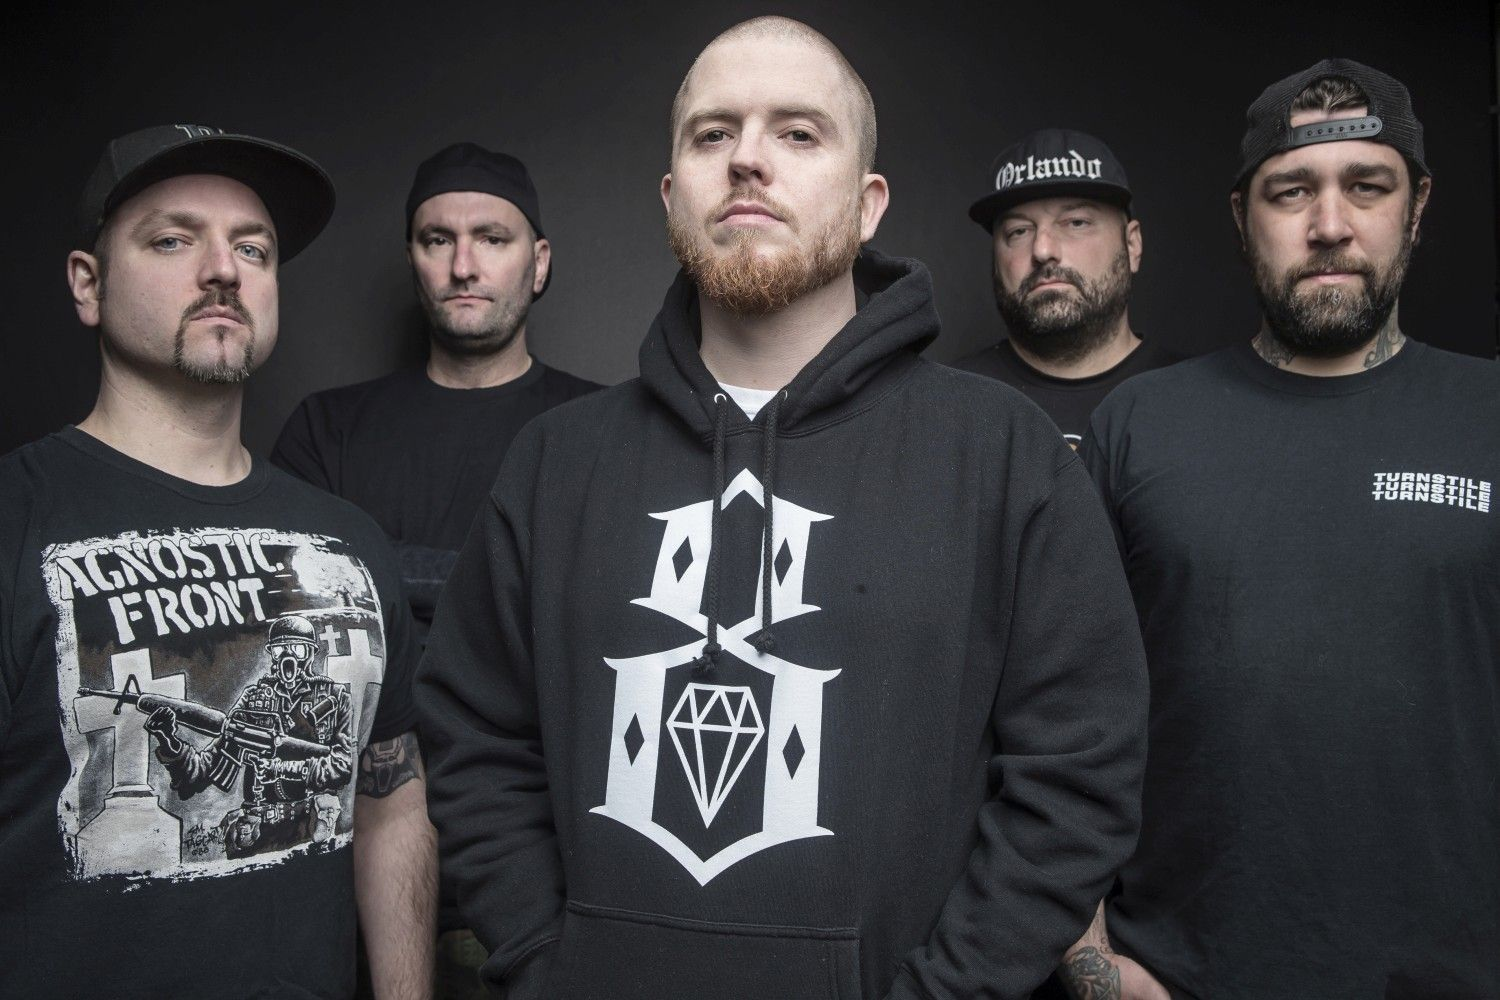 A Hatebreed is fellép a Parkway Drive előtt